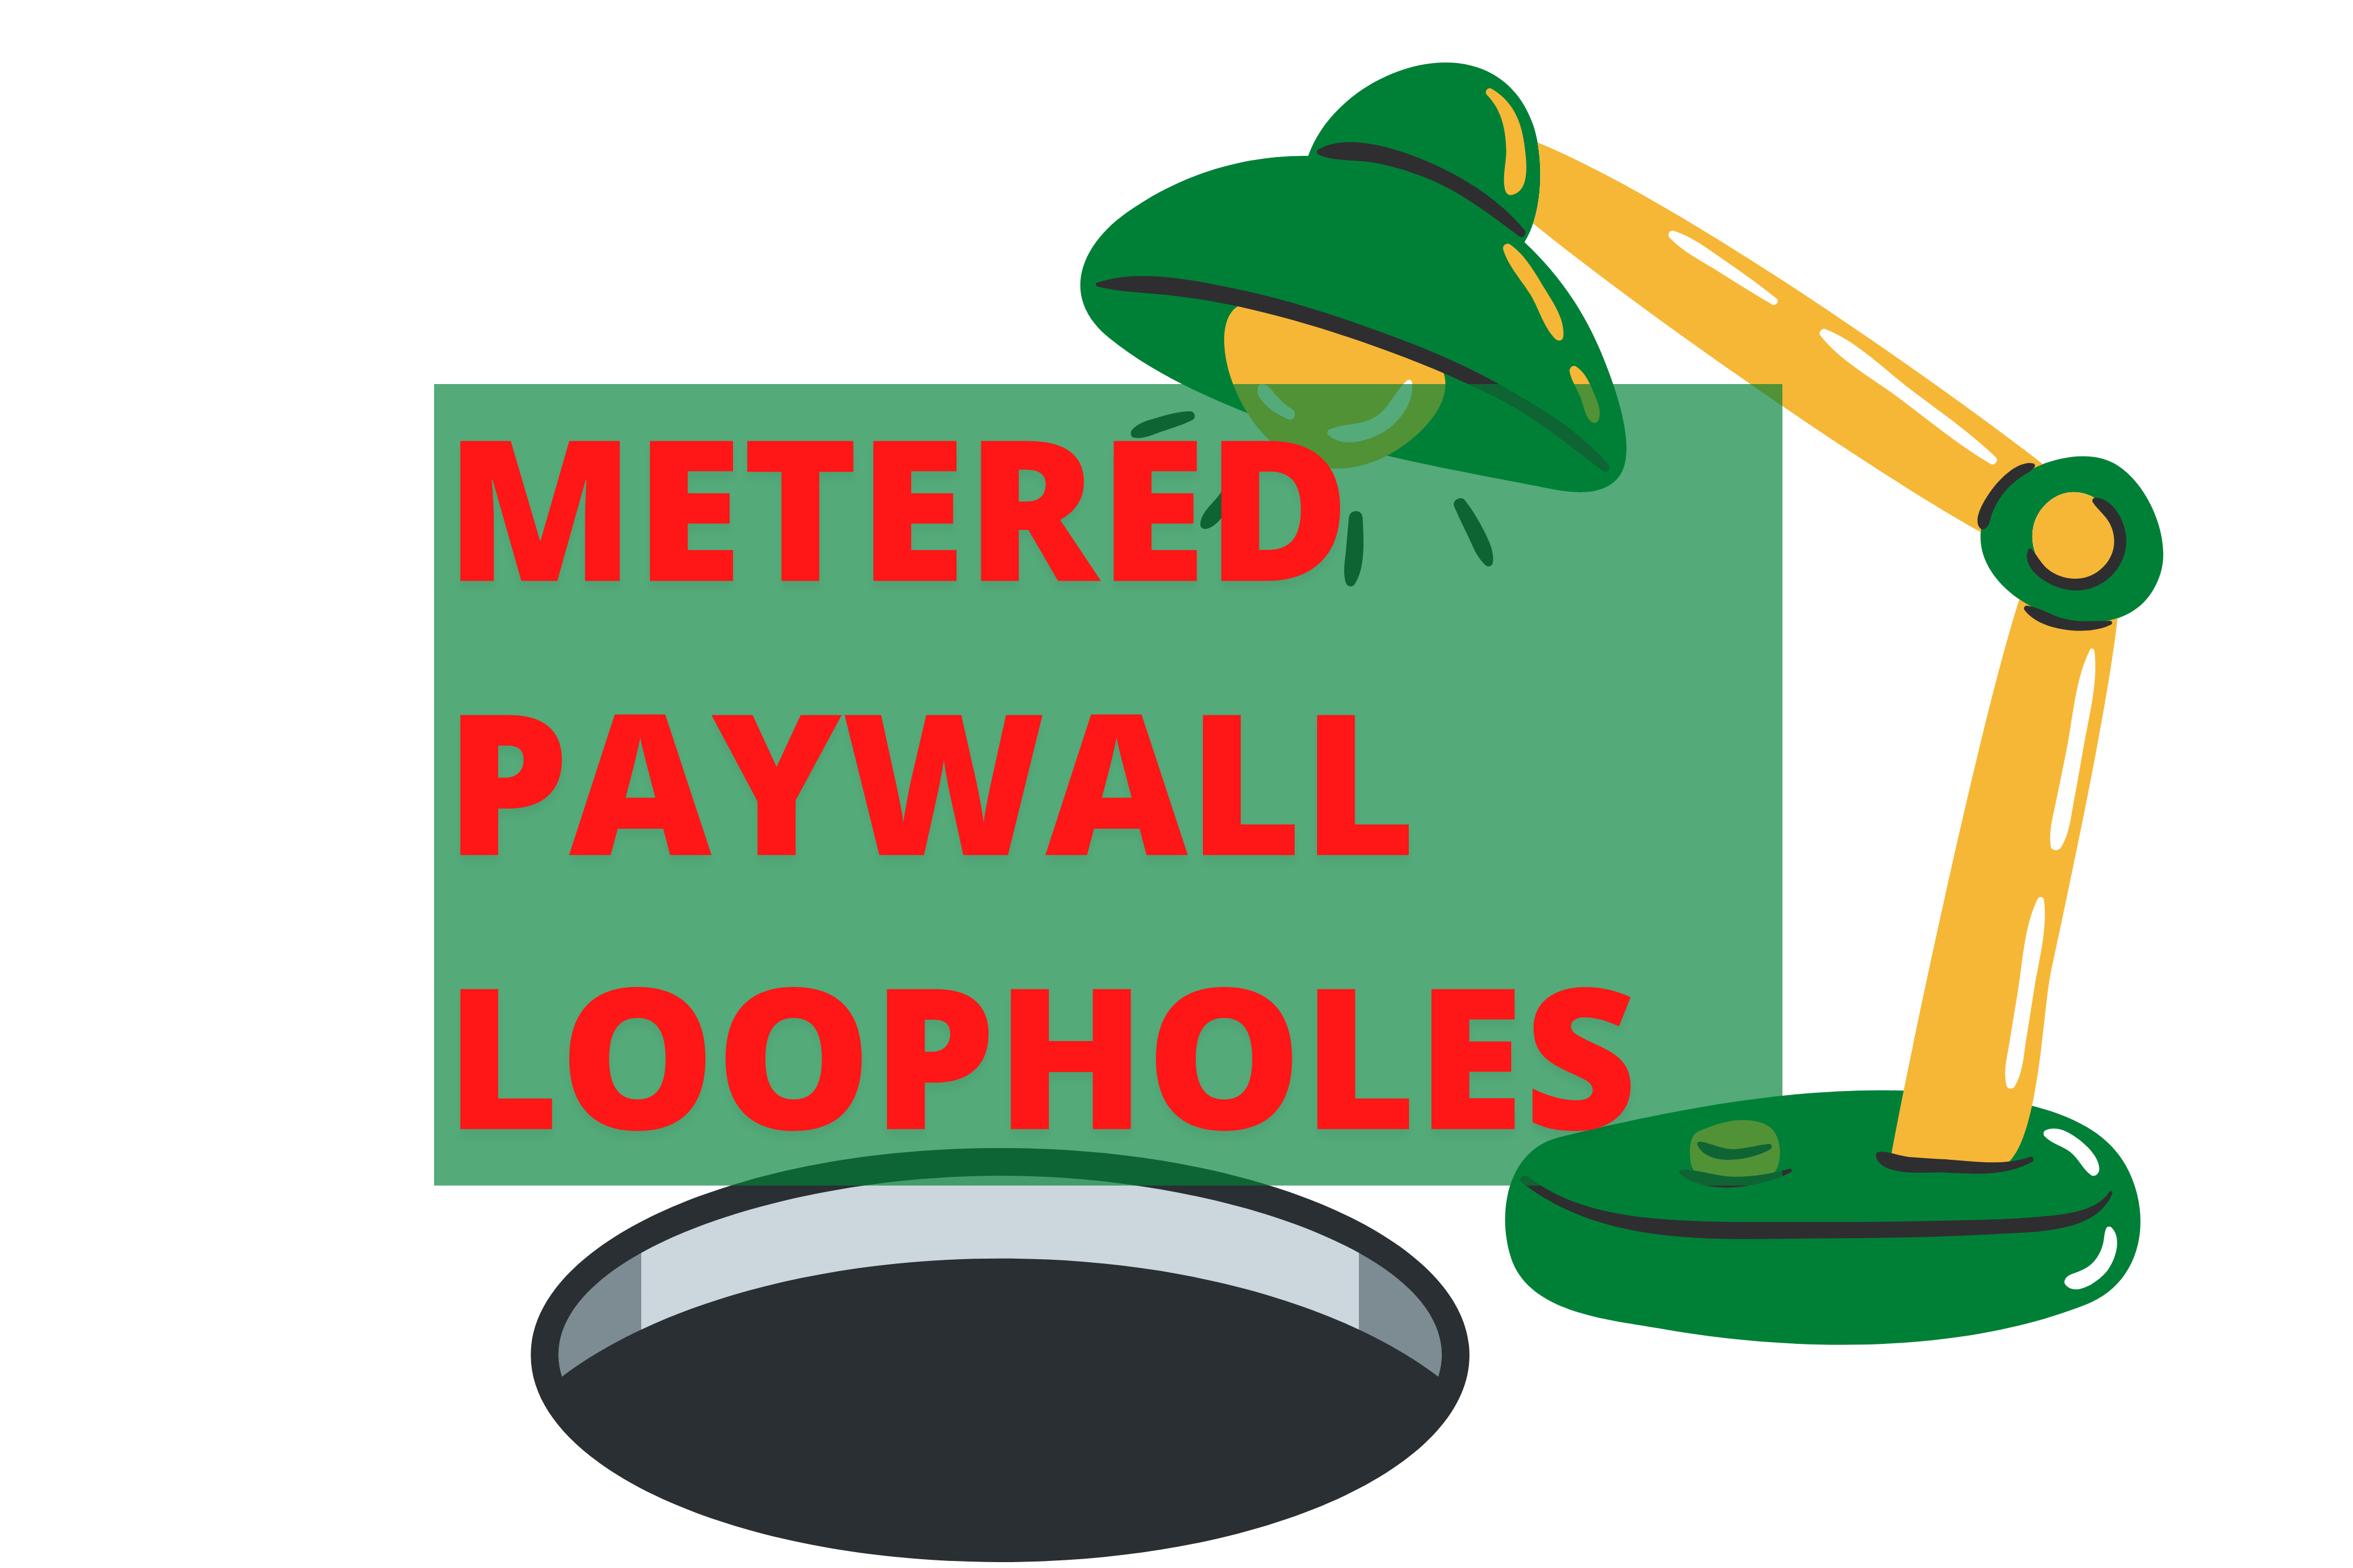 A big black hole and a green lamp, with the text medium paywall loopholes on a white background